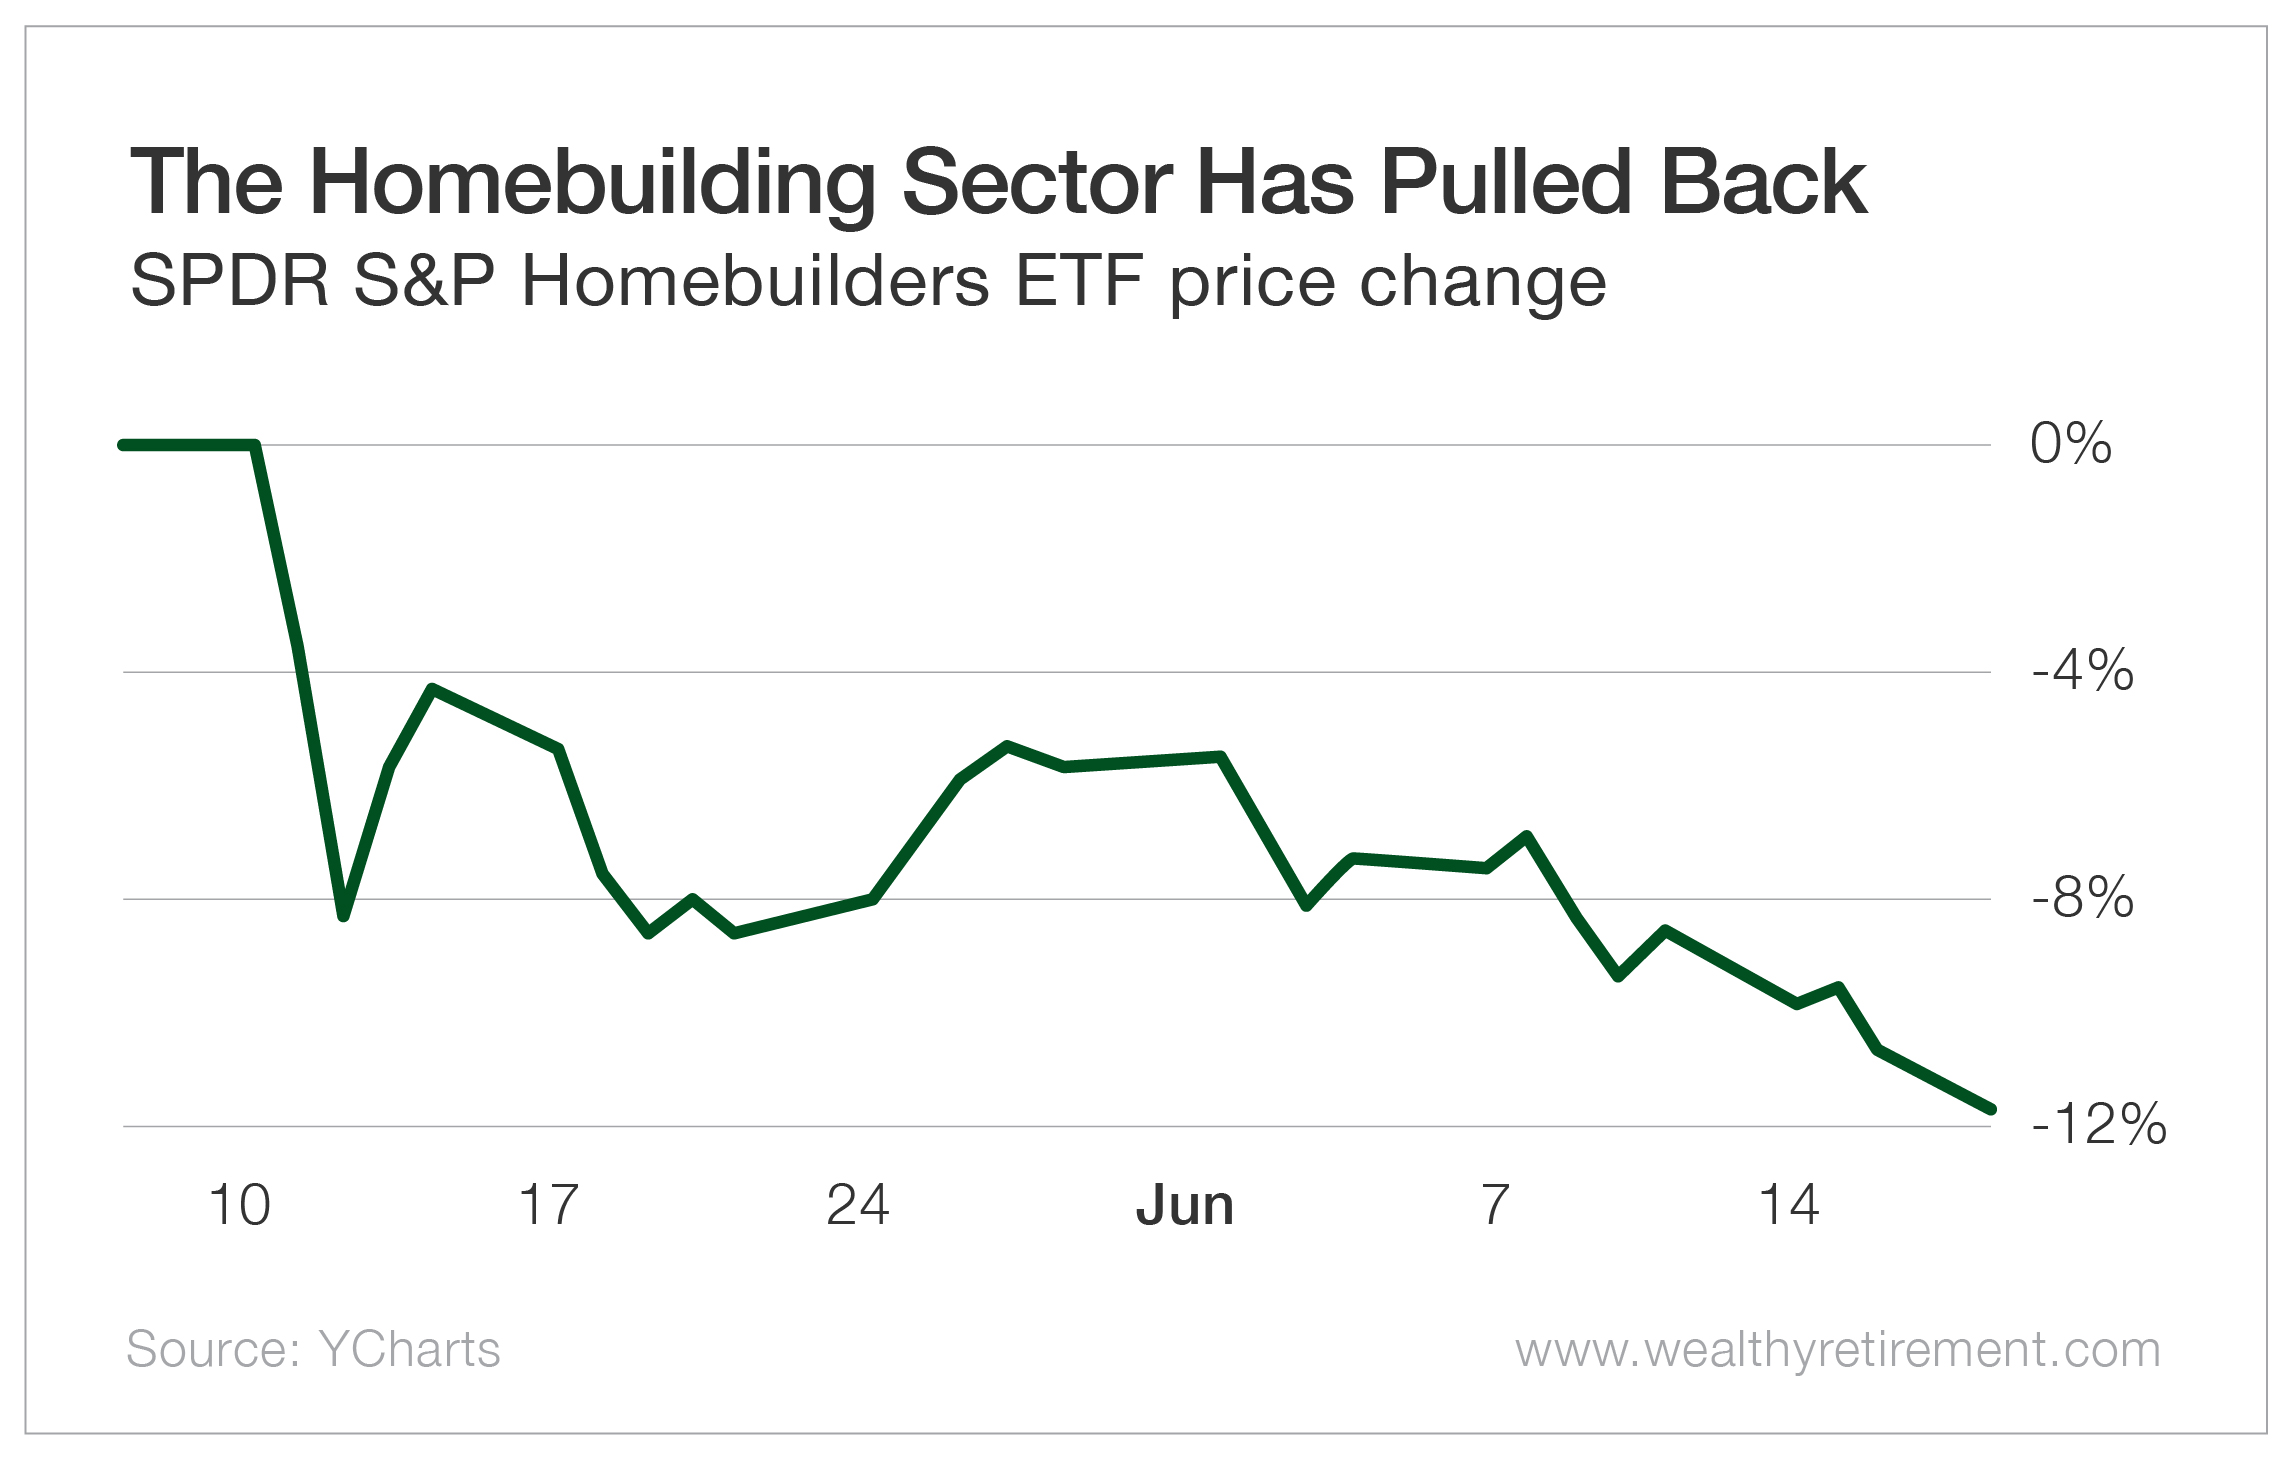 The Homebuilding Sector Has Pulled Back